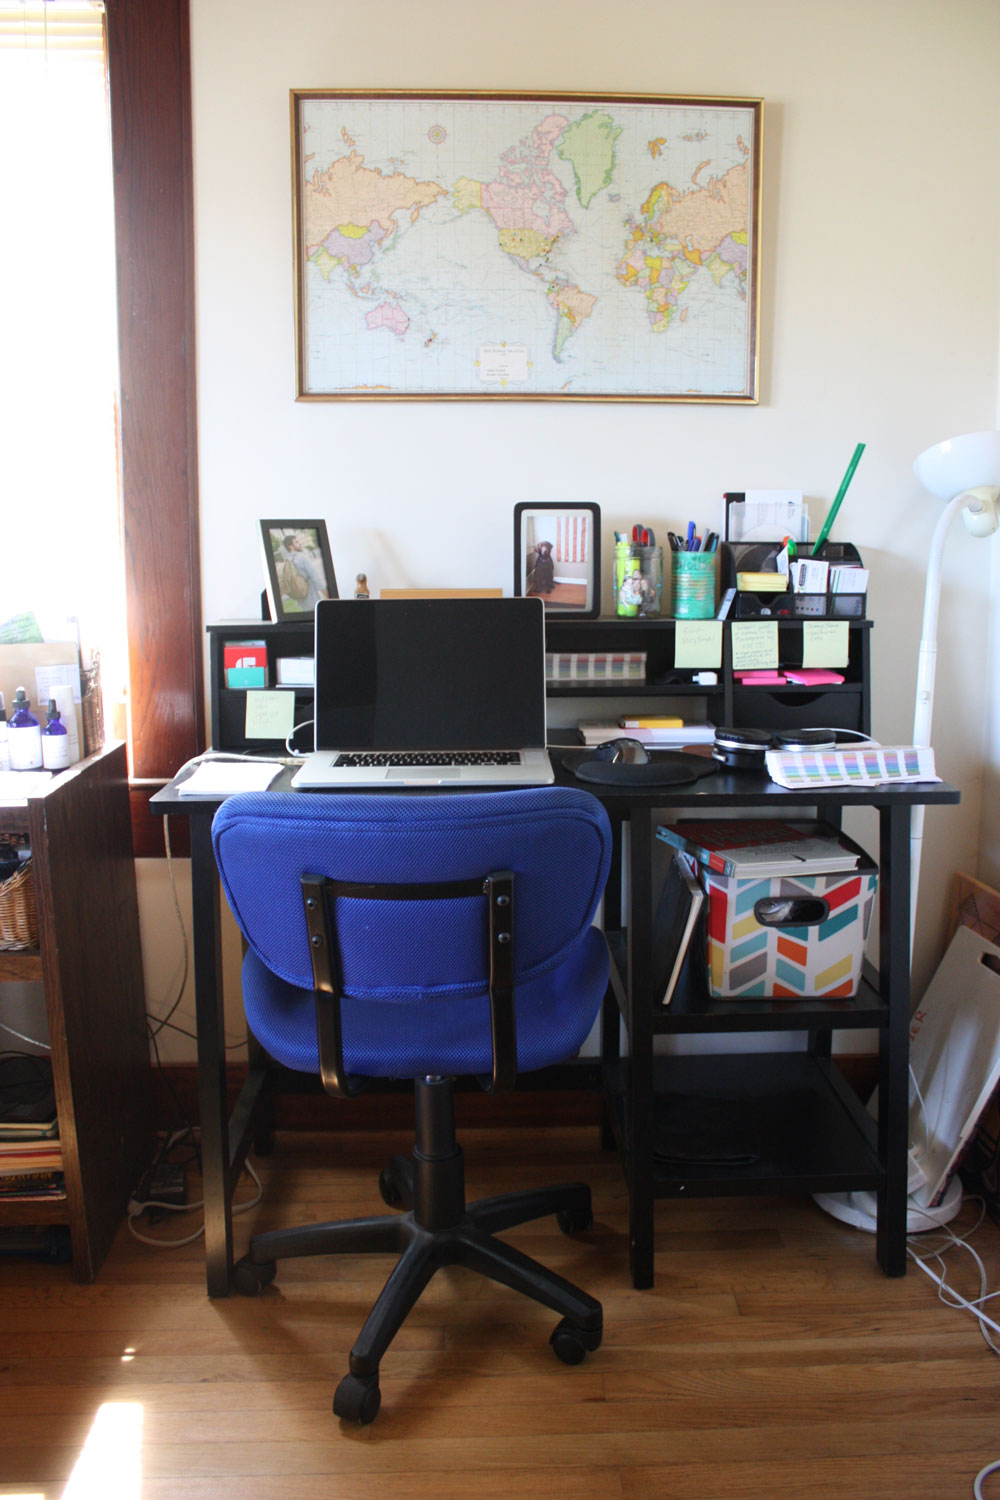 My first home office/desk situation